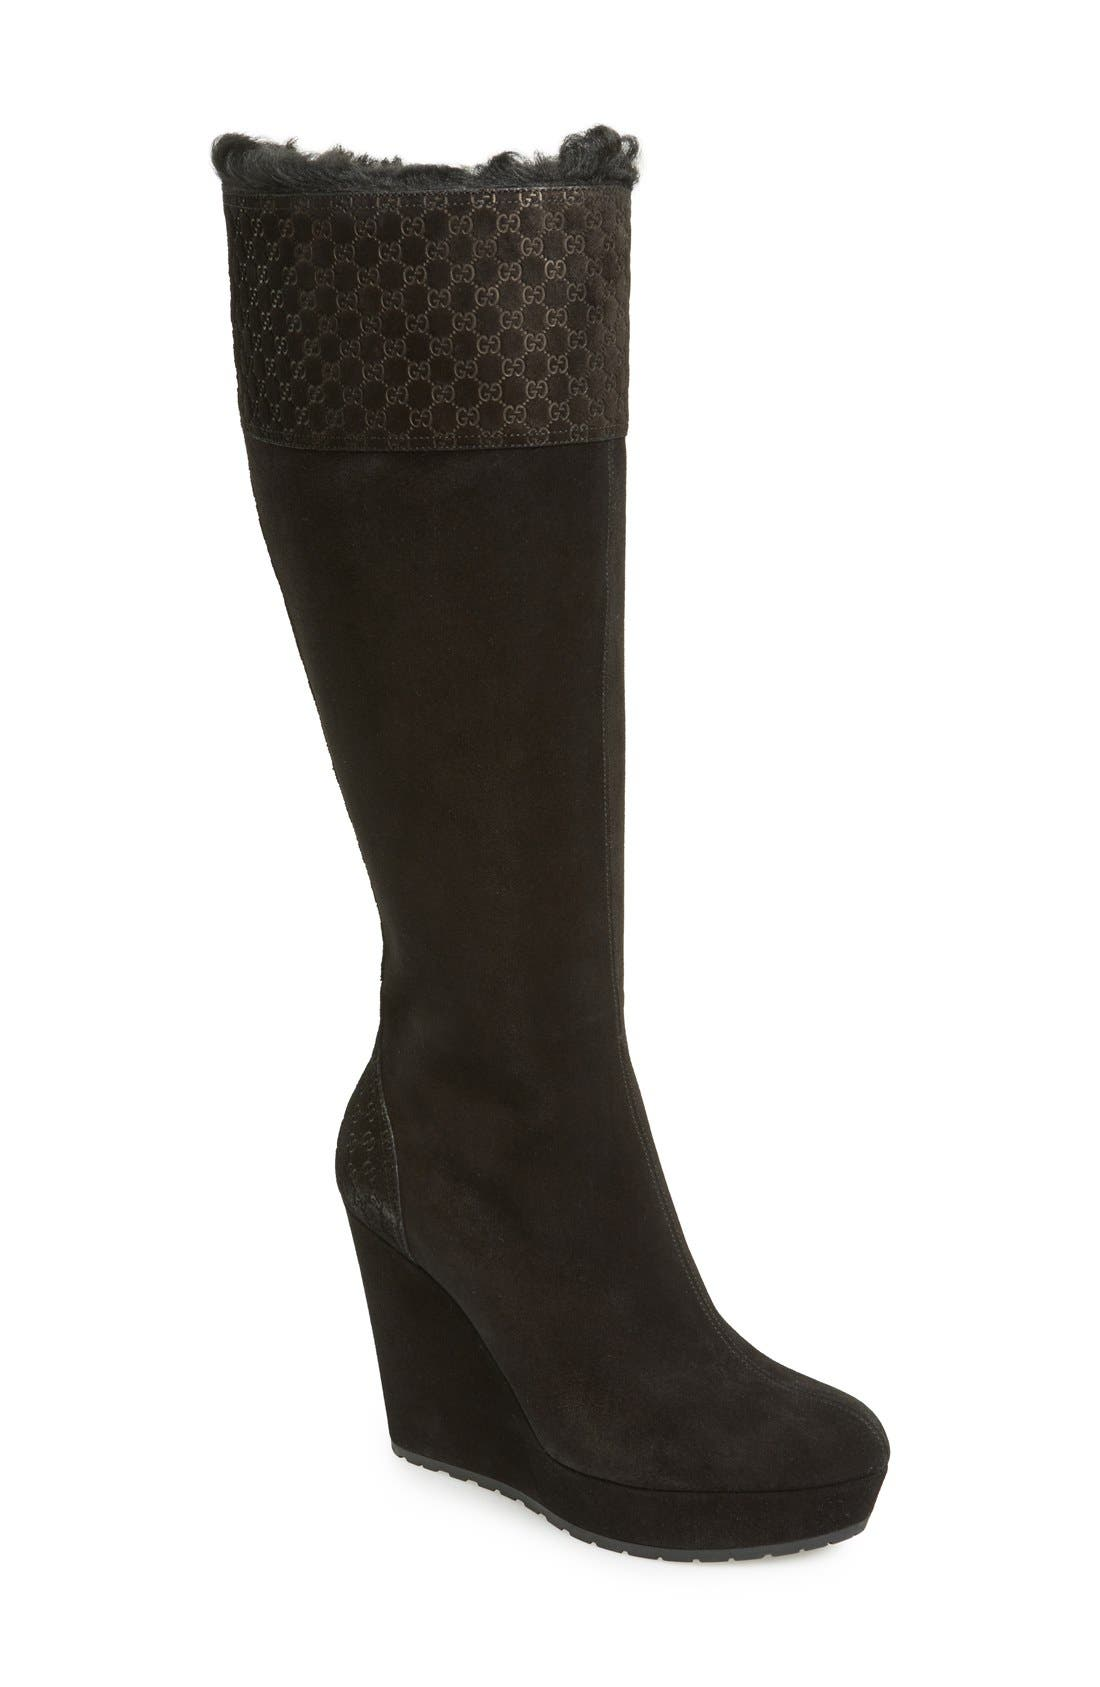 Main Image - Gucci 'Courtney' Boot